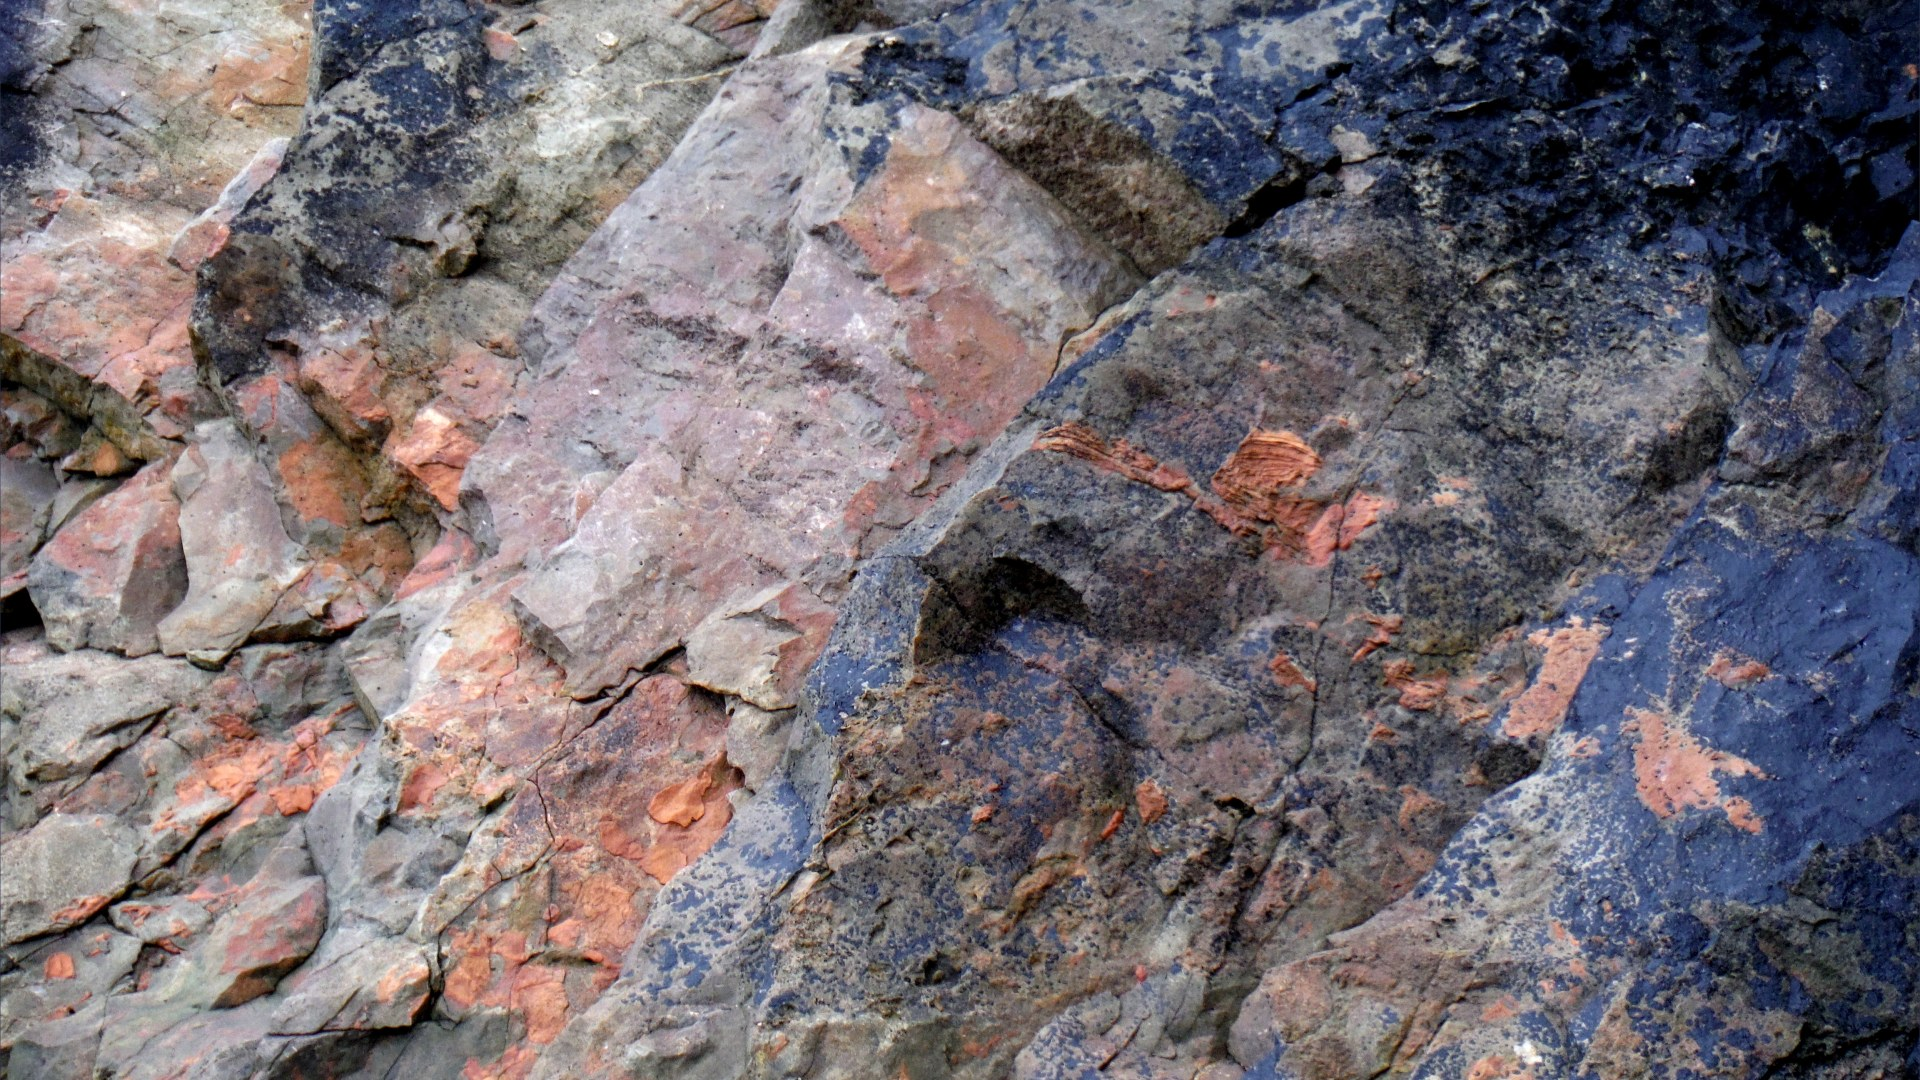 Texture and pattern in a limestone rock face